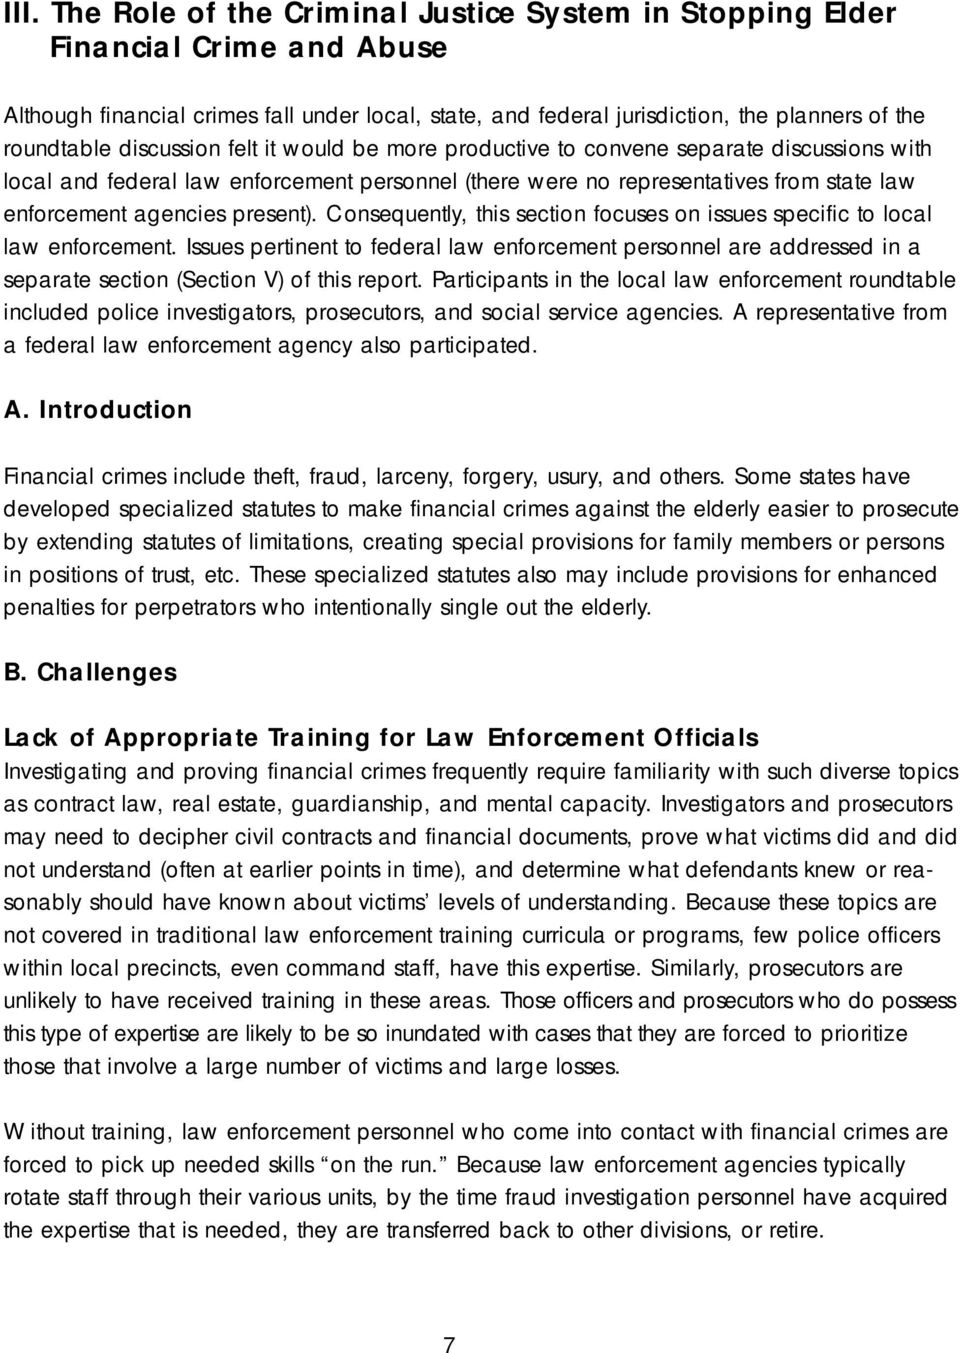 present). Consequently, this section focuses on issues specific to local law enforcement.